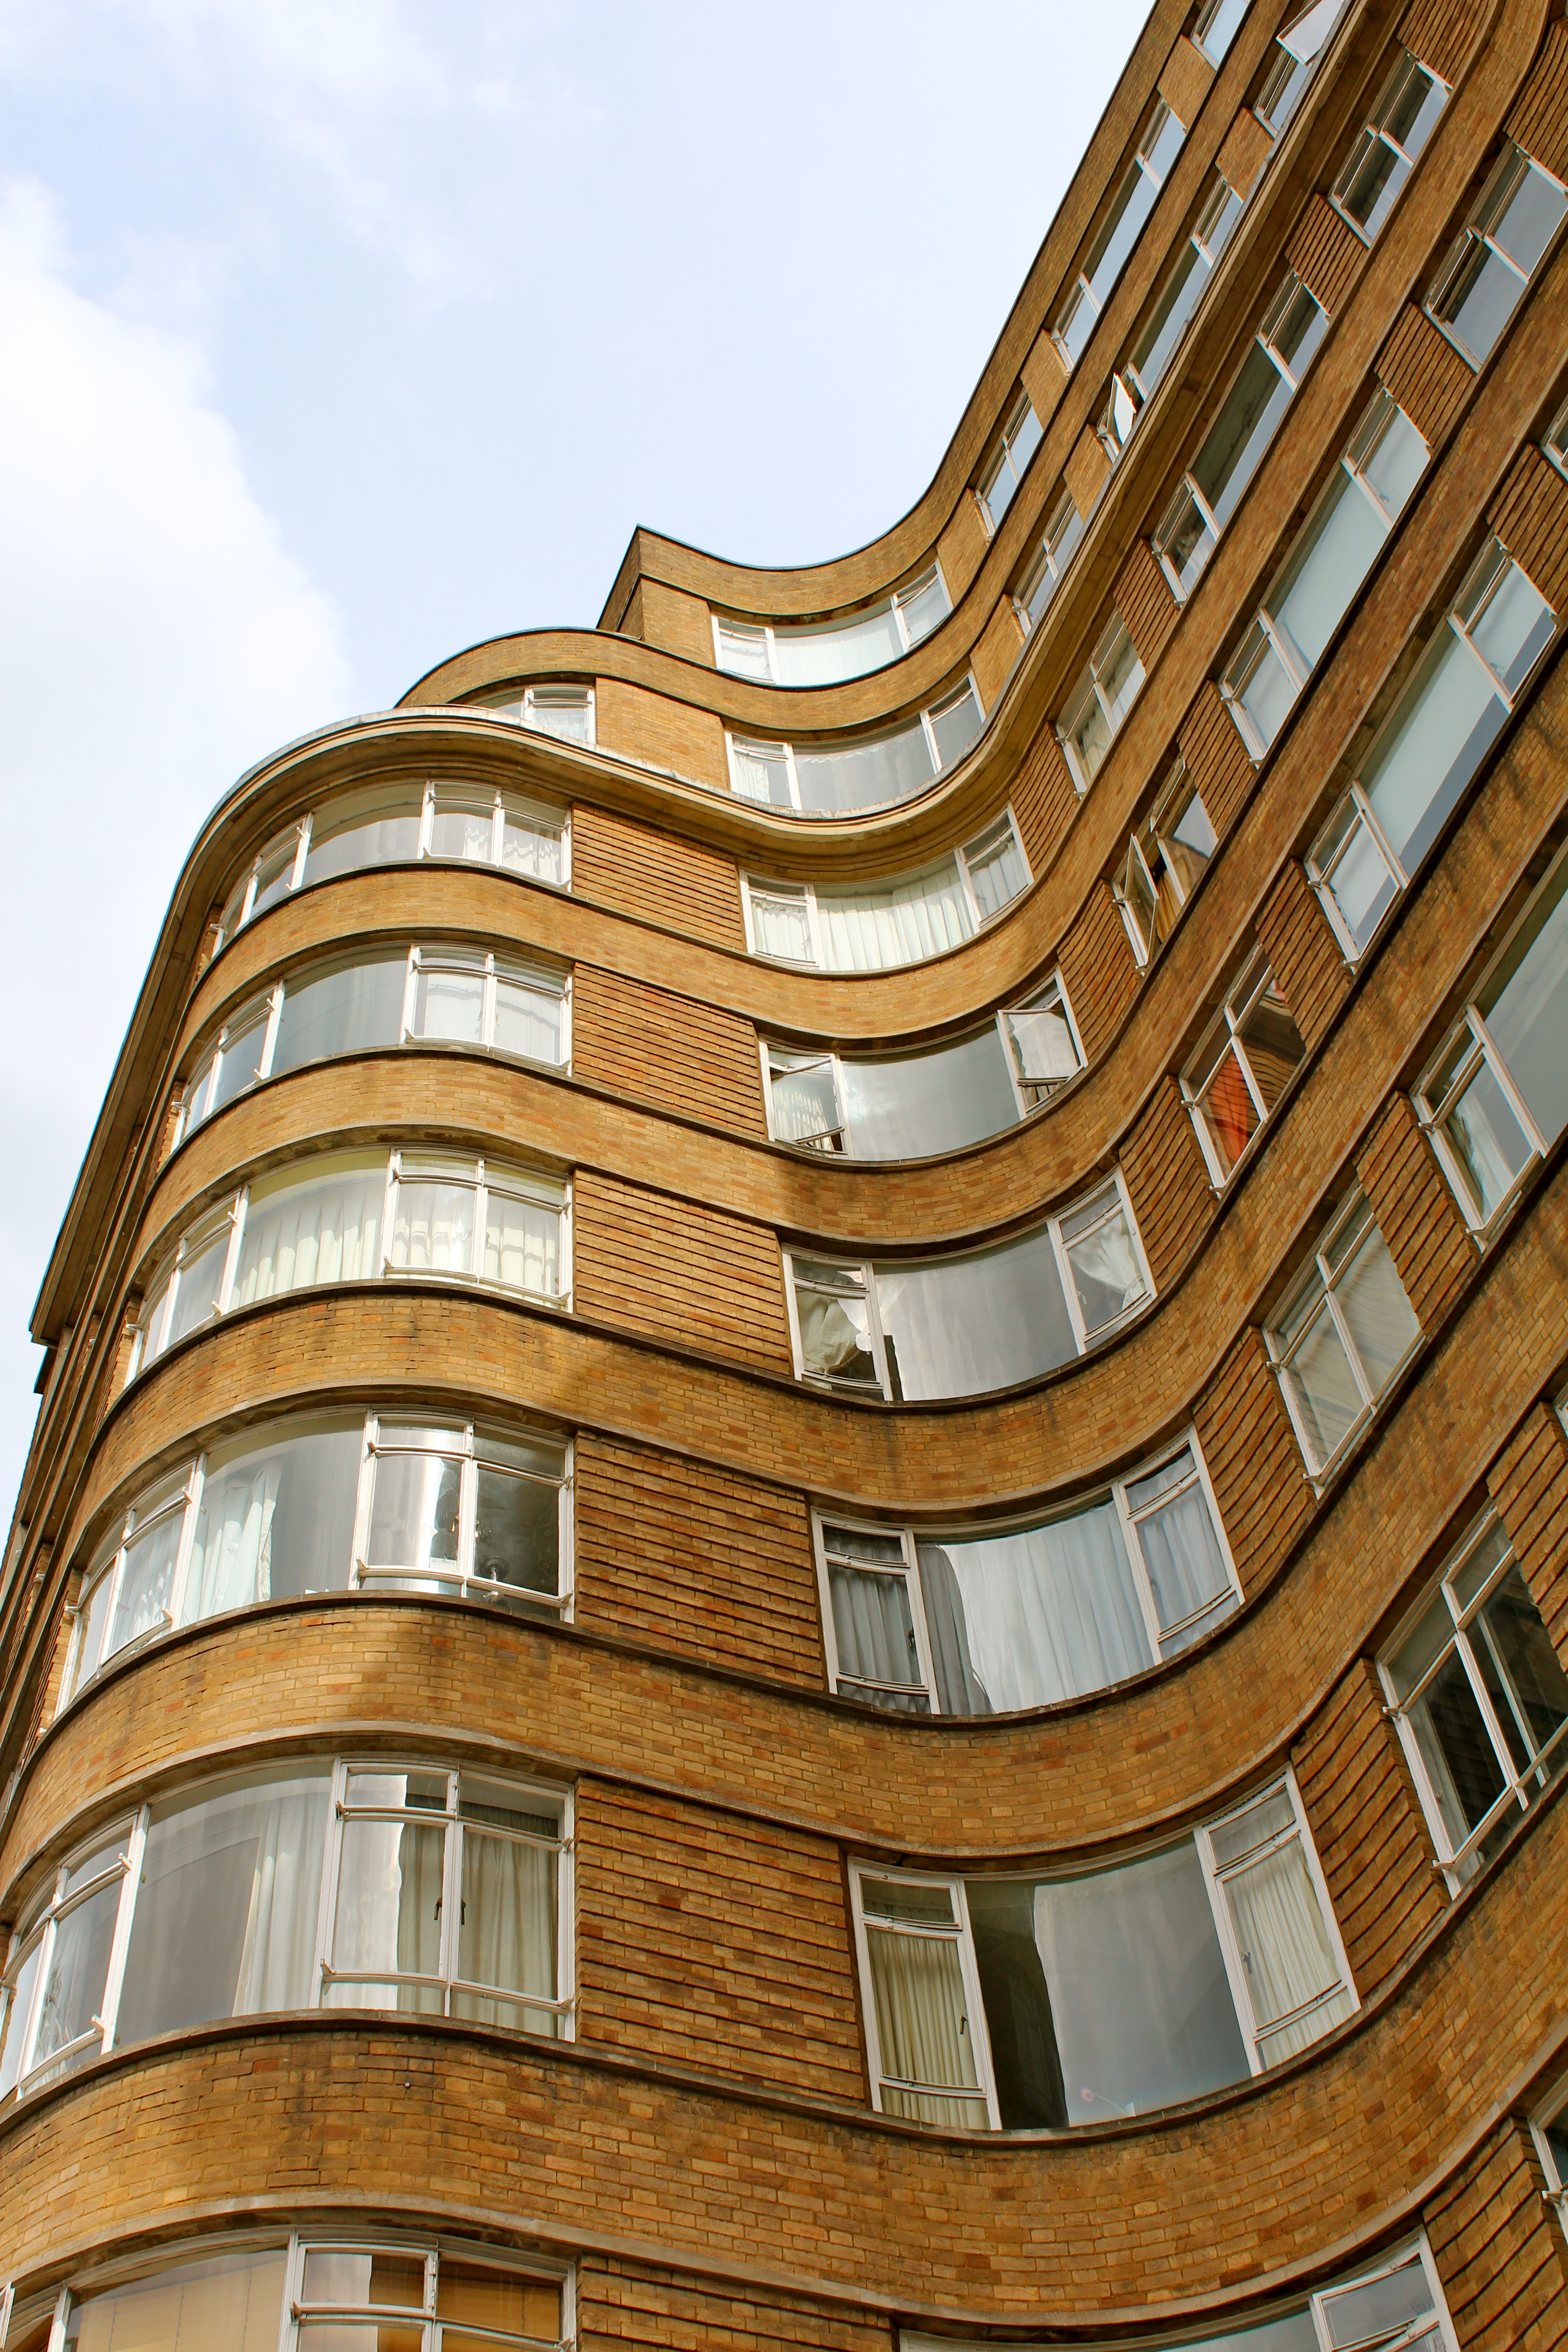 Art deco london thelondonphile - What is art deco ...